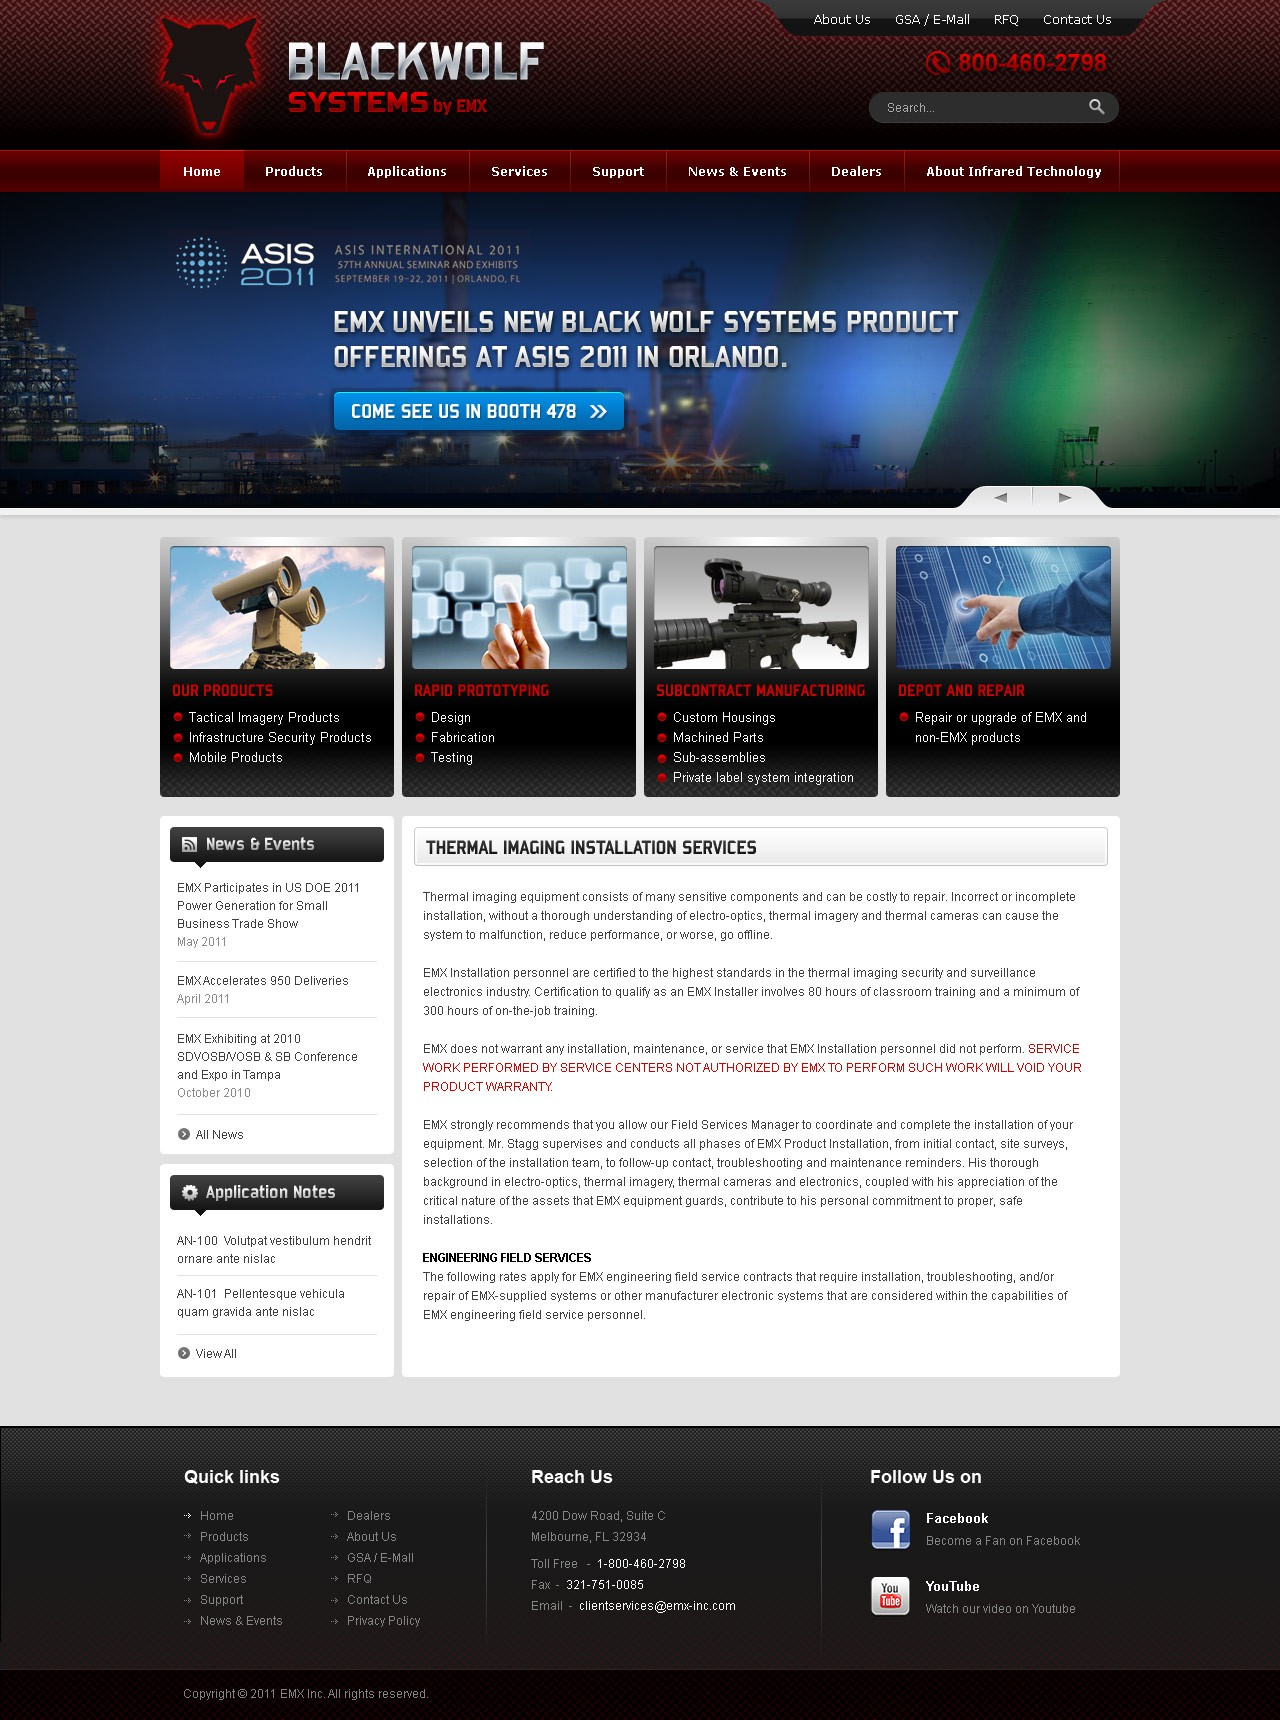 New website design wanted for Black Wolf Systems by EMX (WWW.EMX-INC.COM)